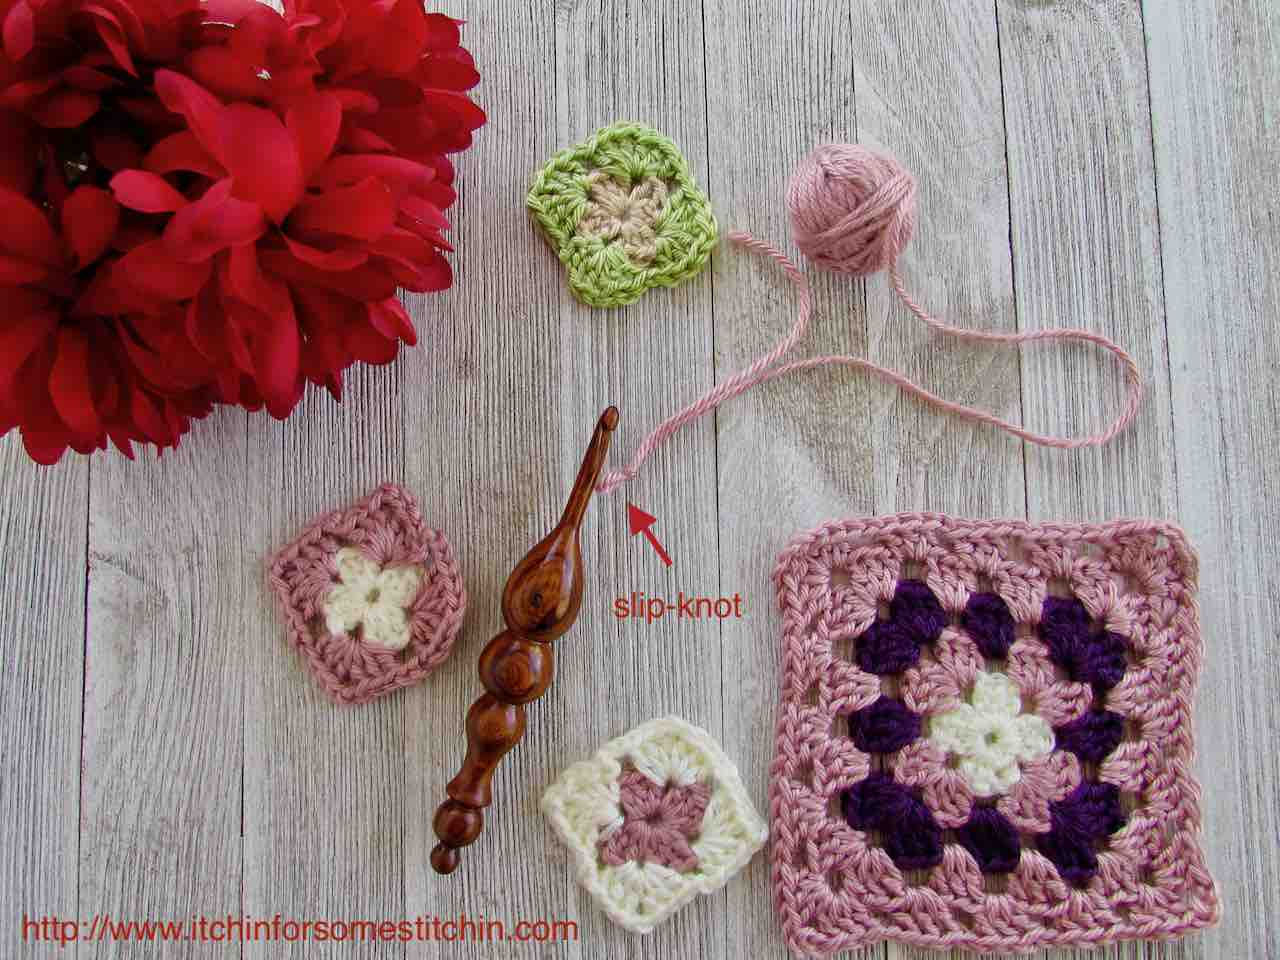 How to Crochet Granny Squares_Make a slip-knot by www.itchinforsomestitchin.com